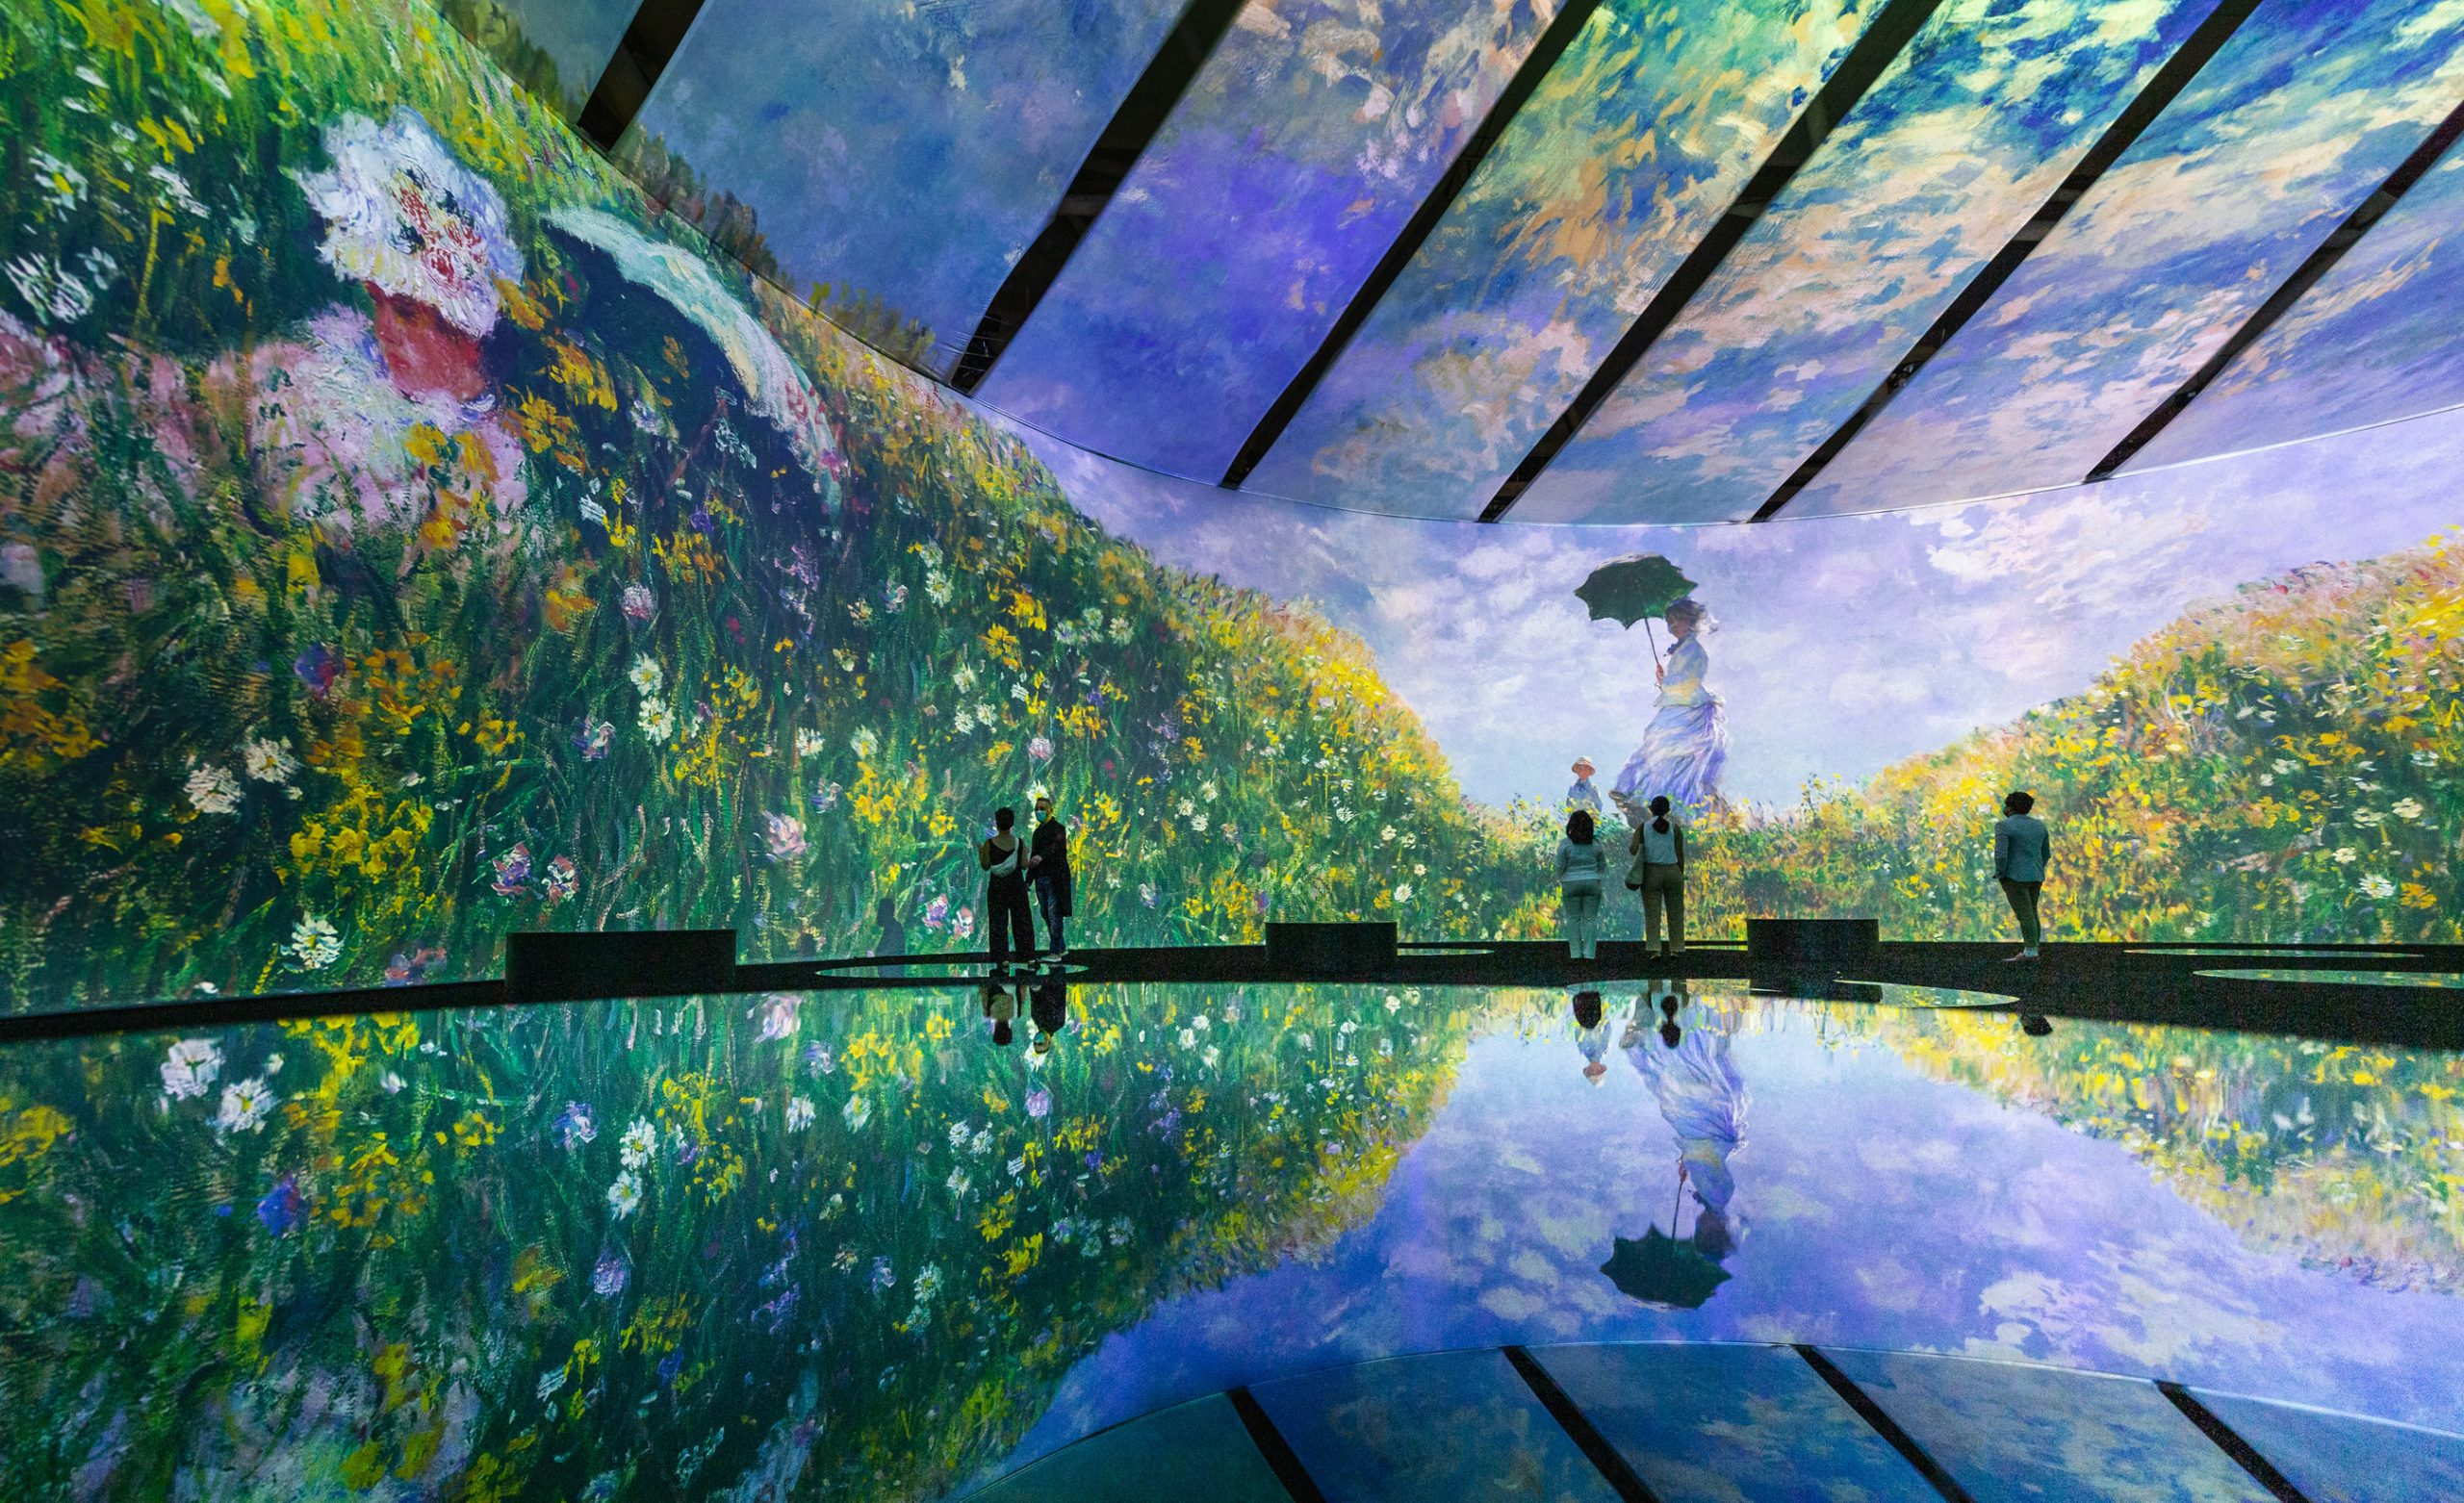 Tired of the already immersive Van Gogh experience?  Three separate companies launch immersive competitive experiences at Monet